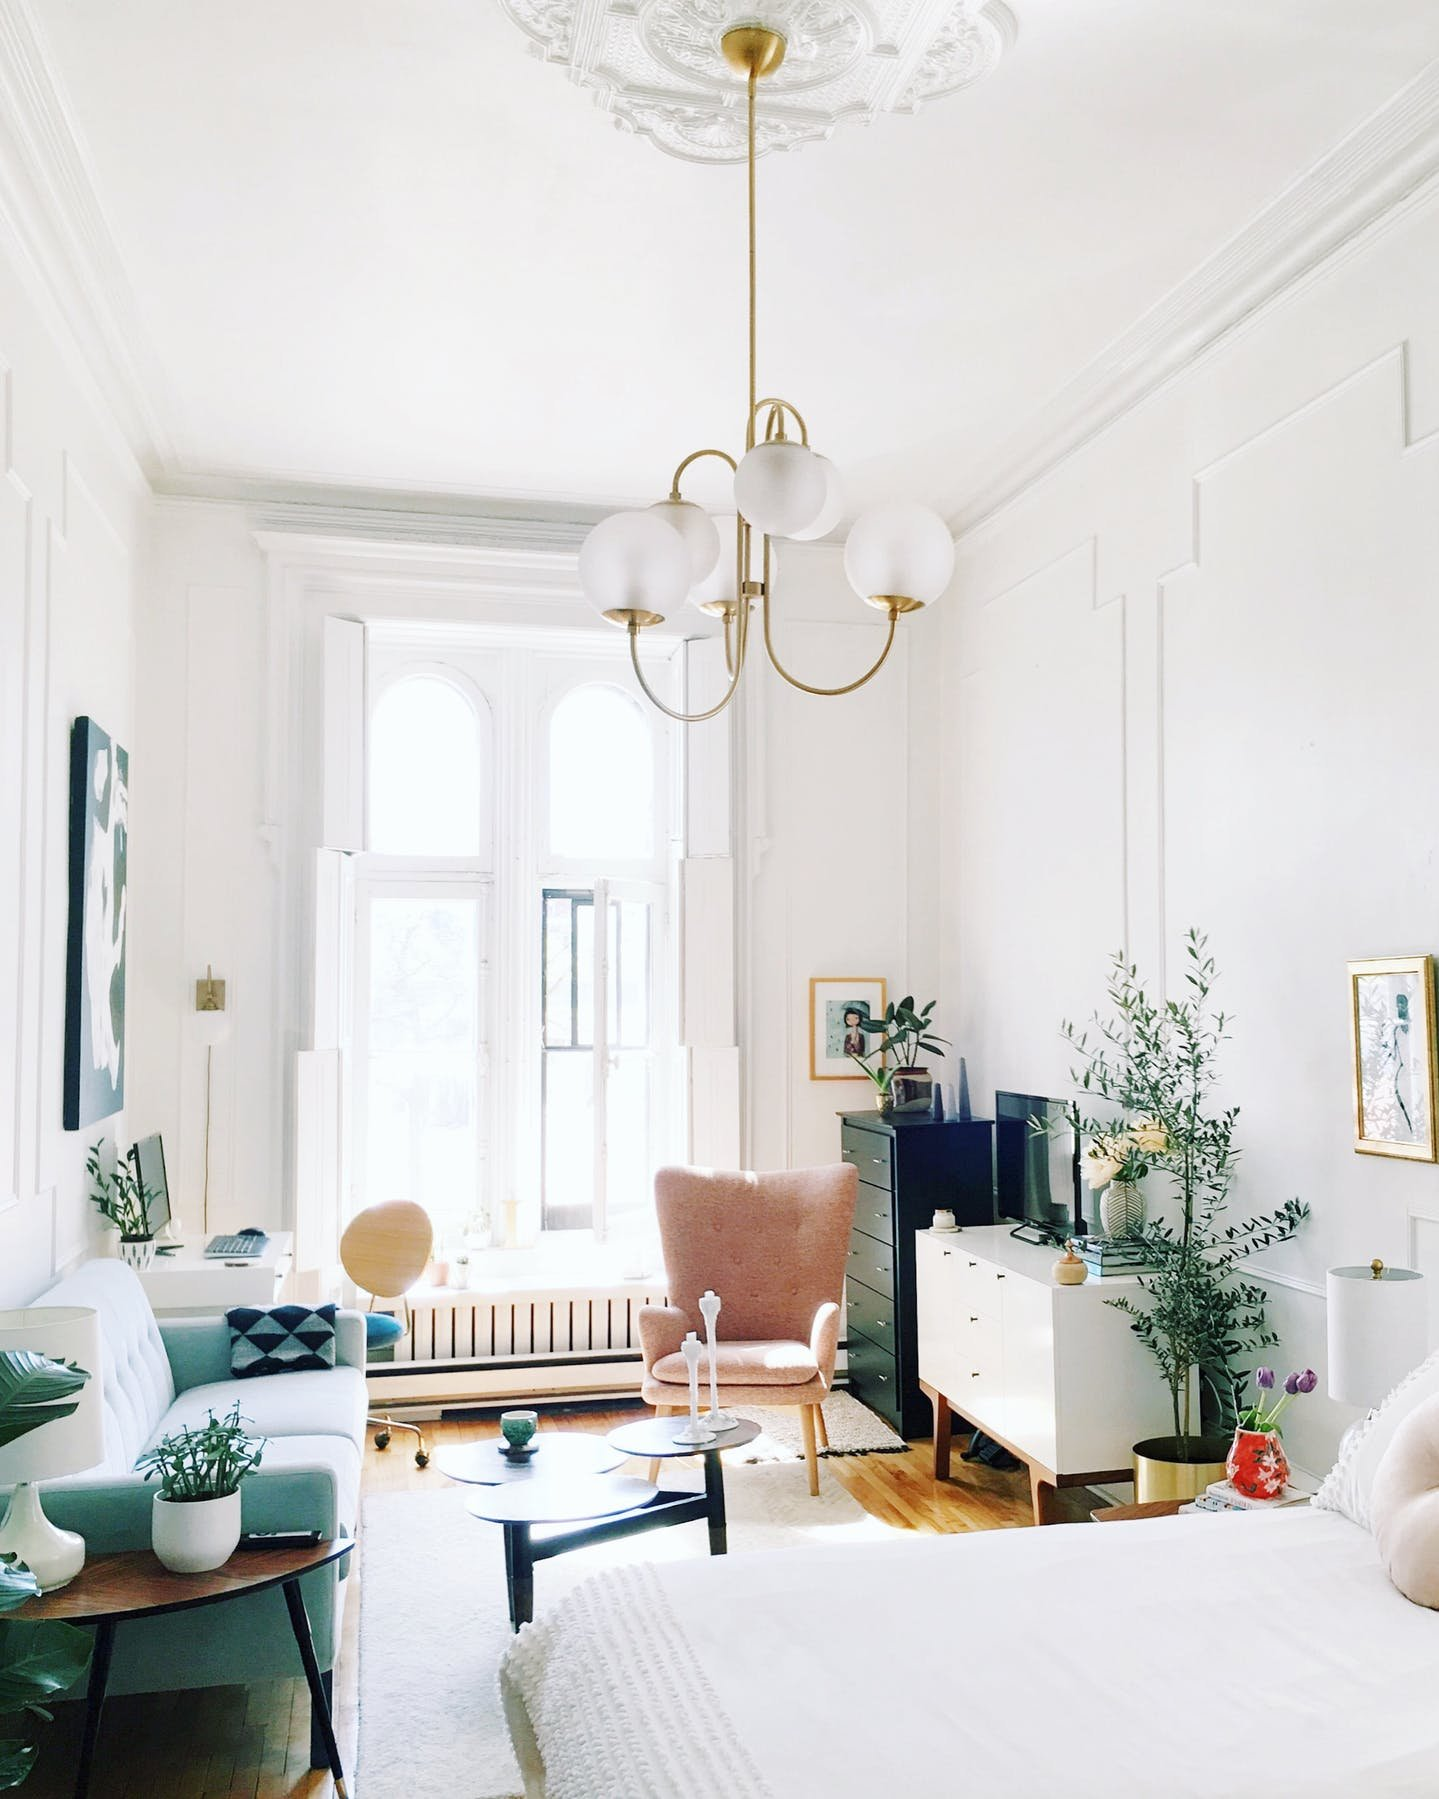 5 Small Apartment Decorating Tips To Make The Most of Your Space